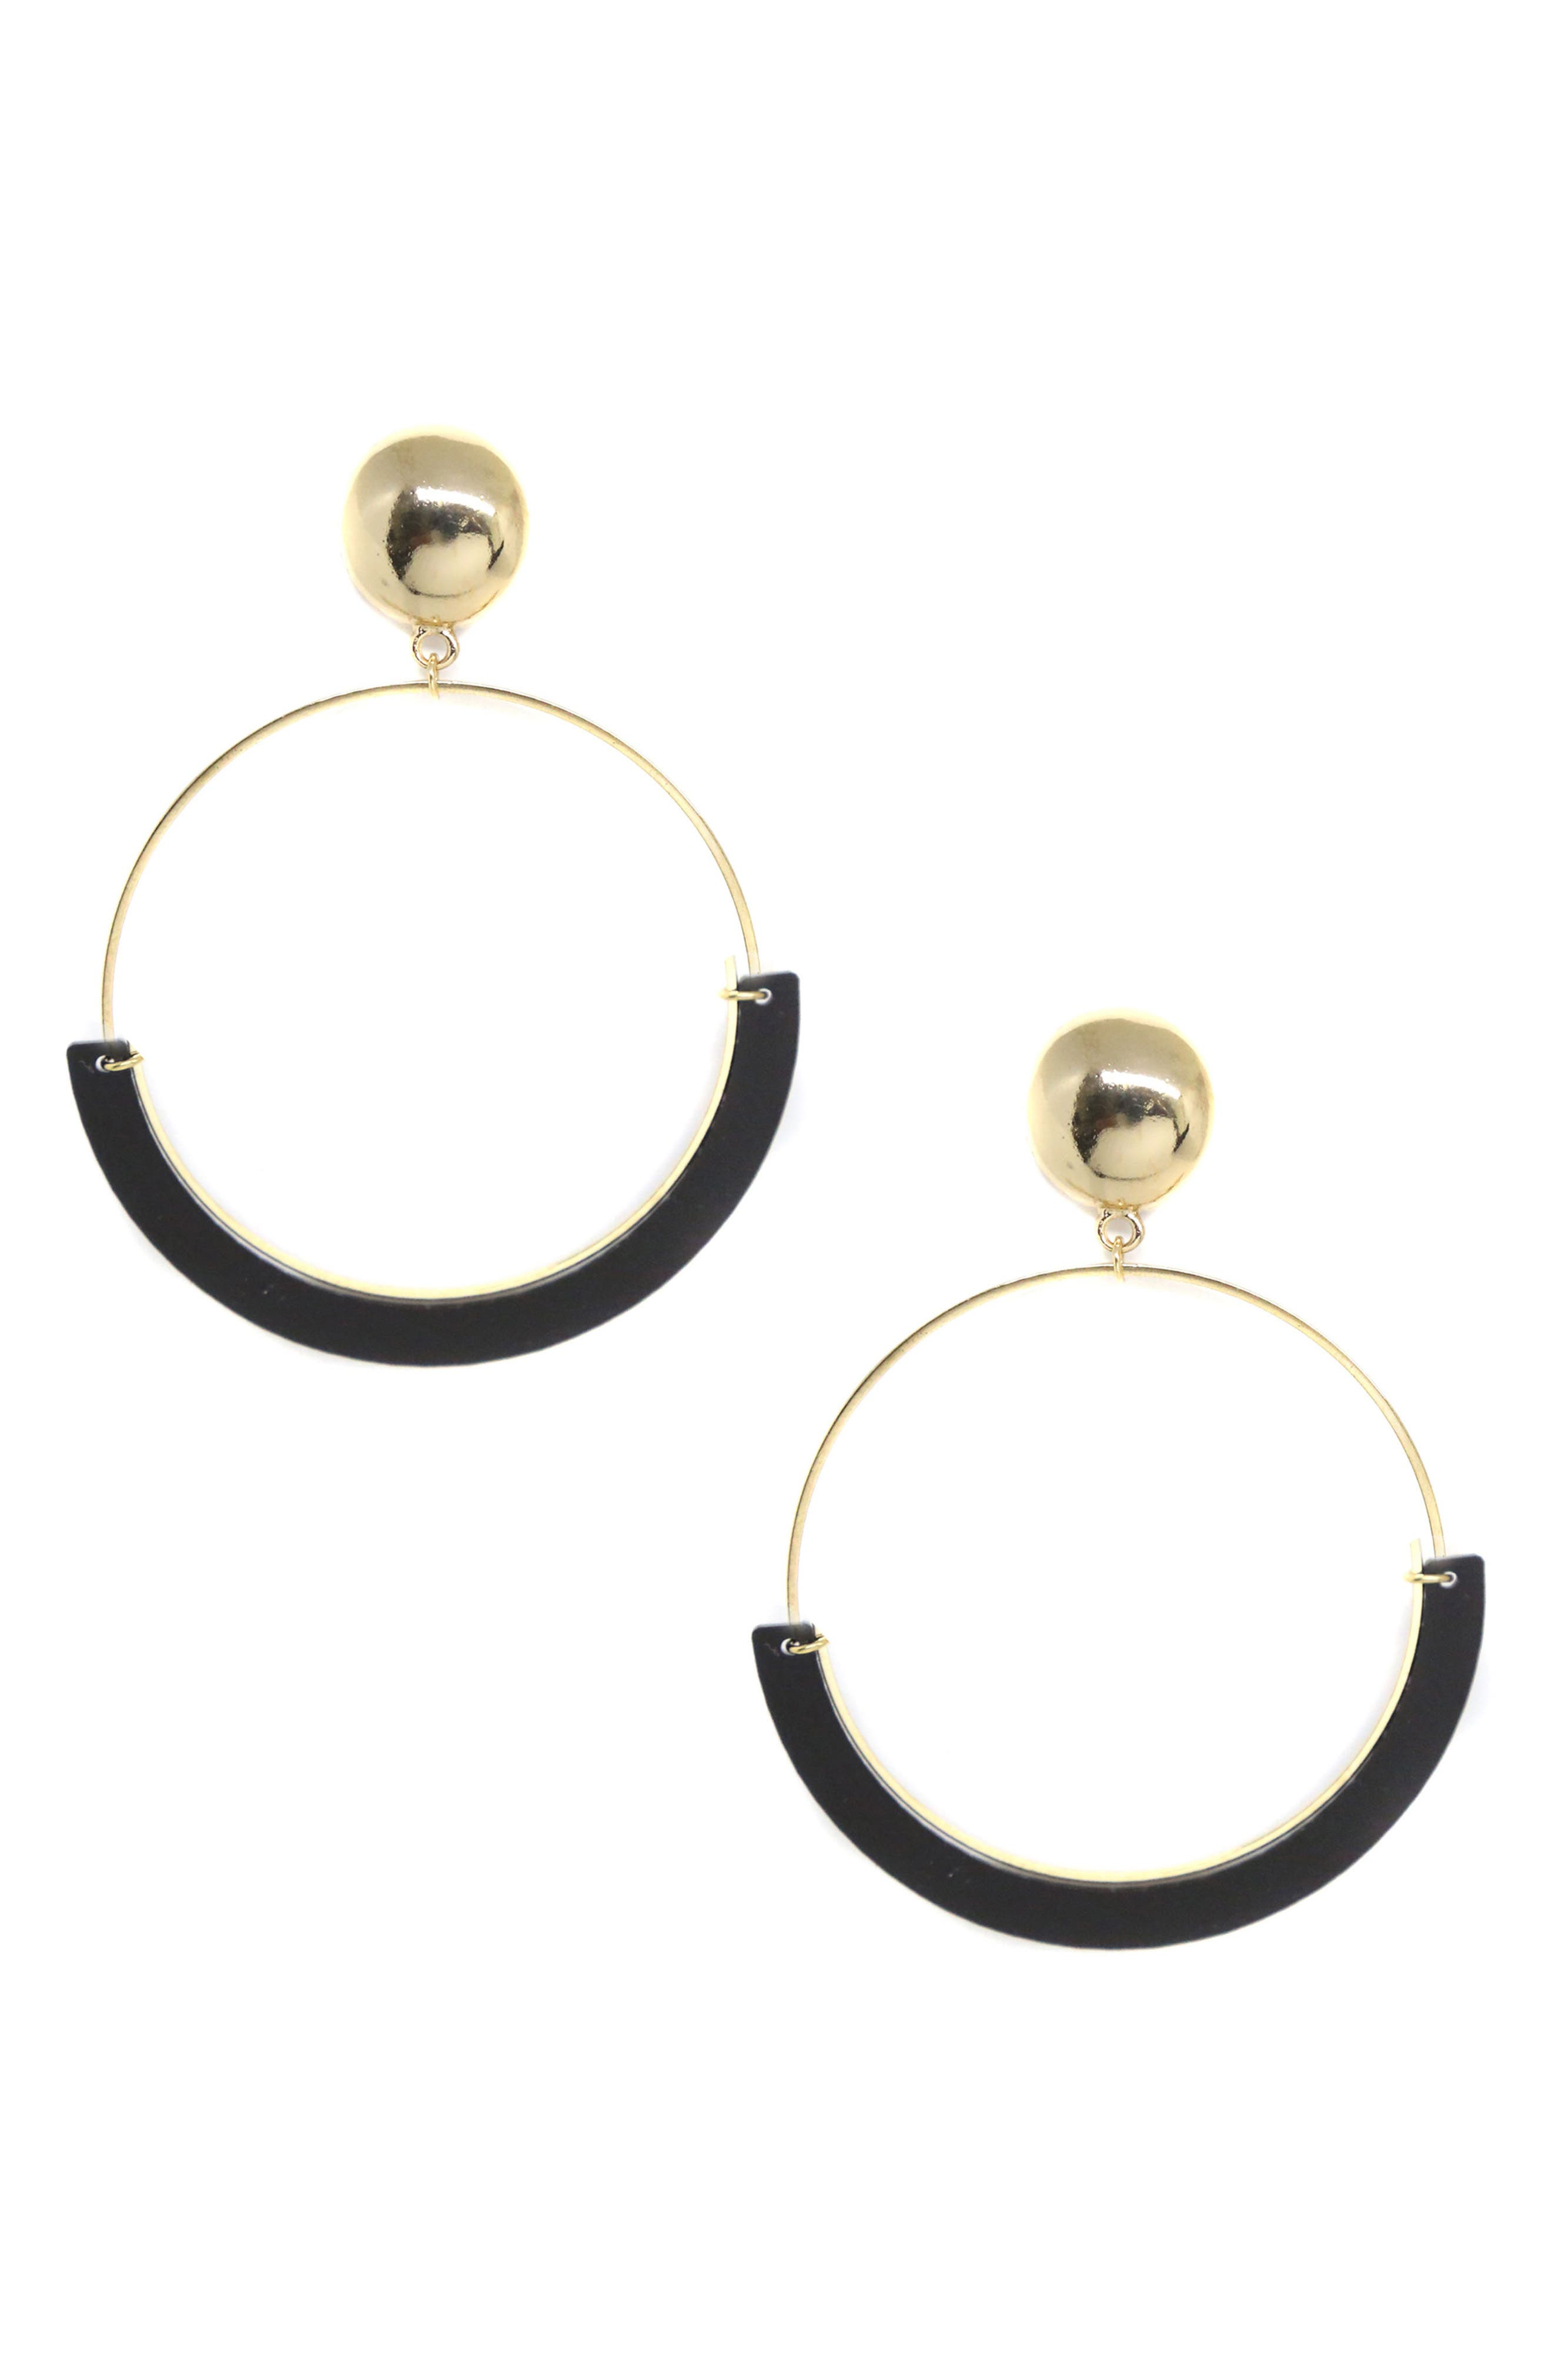 Gold Wire & Resin Hoop Earrings,                             Main thumbnail 1, color,                             001